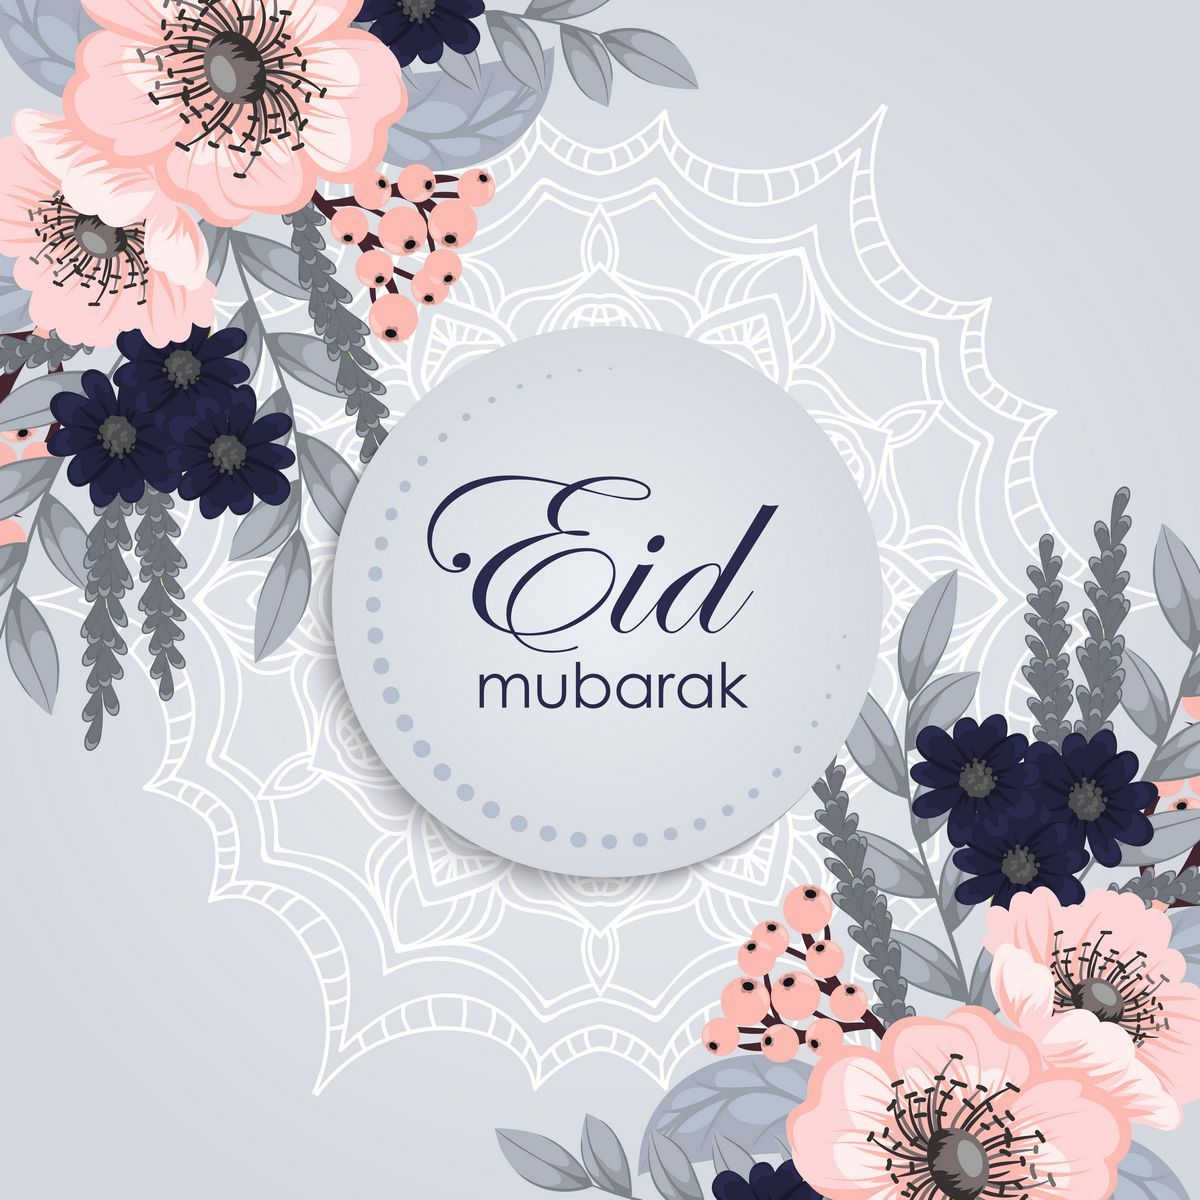 Eid Mubarak Pictures Greetings Wishes 2019 With Images Eid